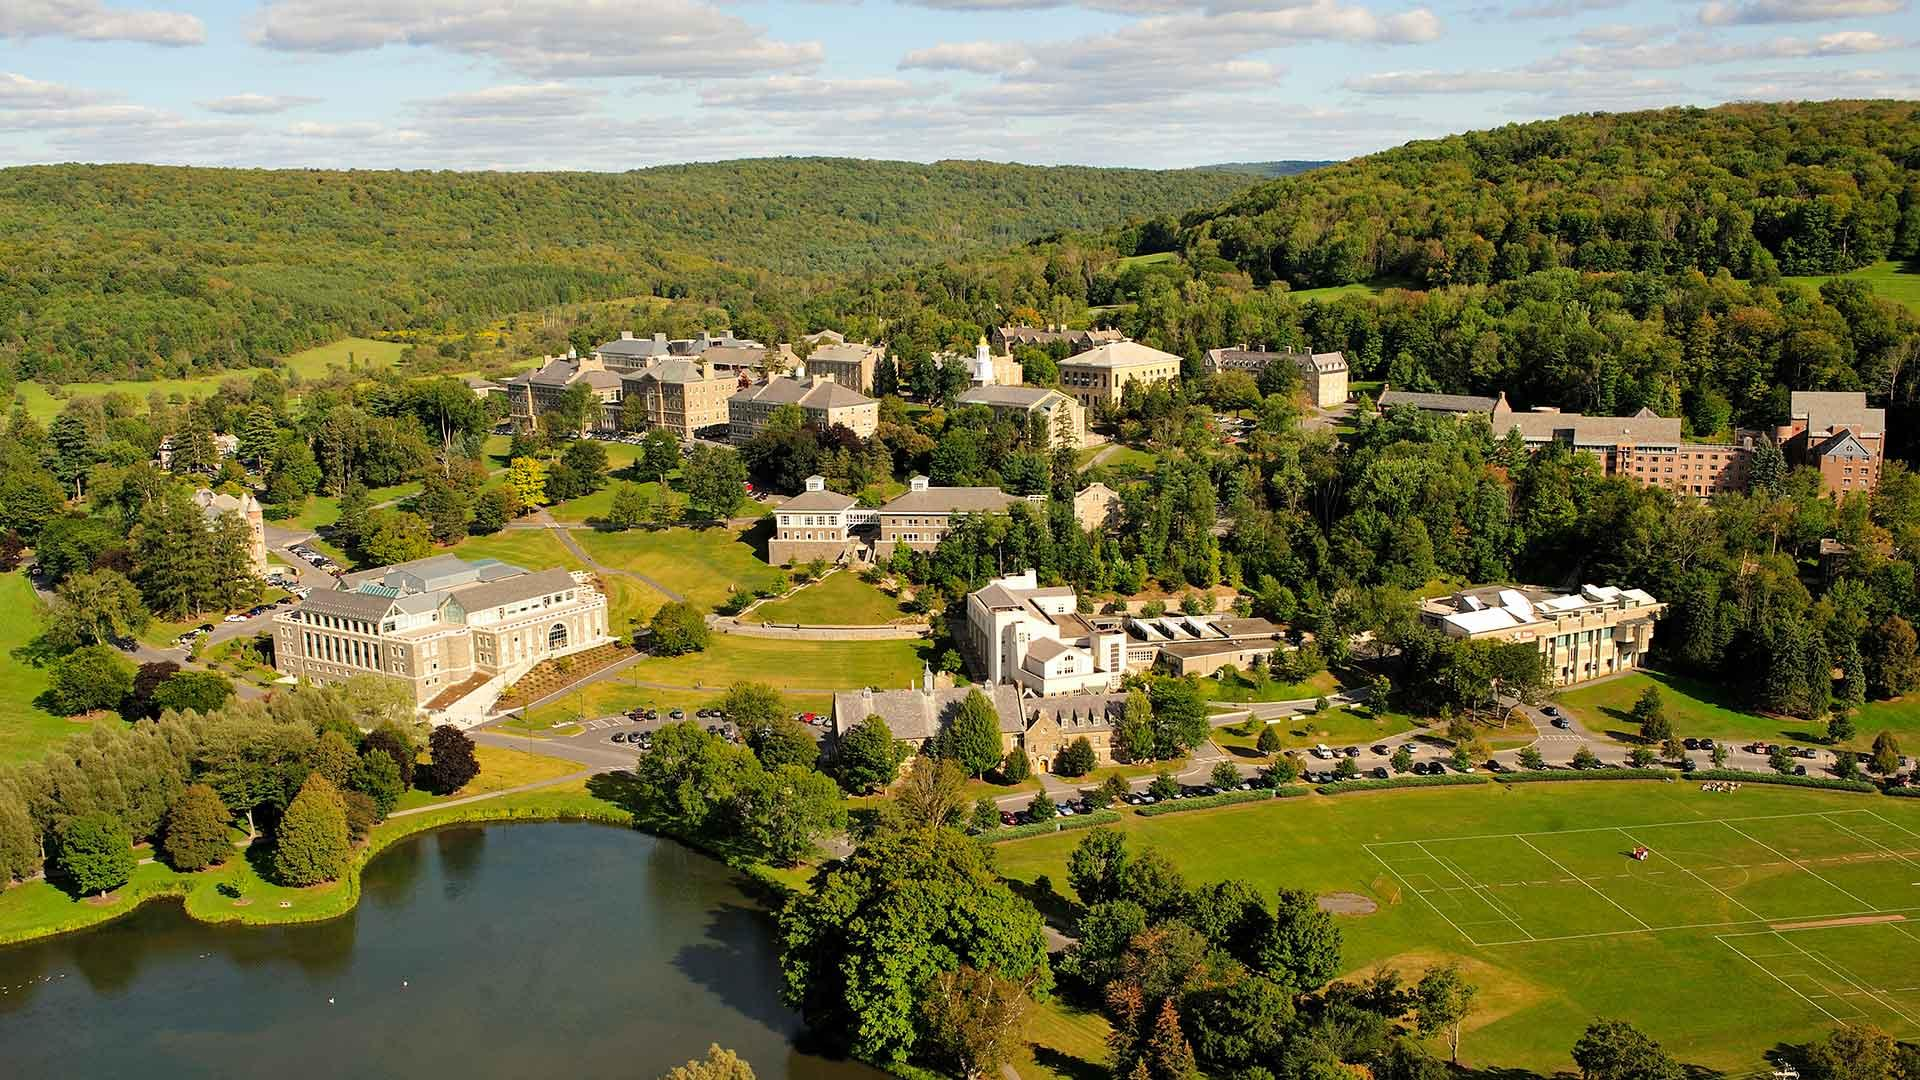 Aerial view of the Colgate campus